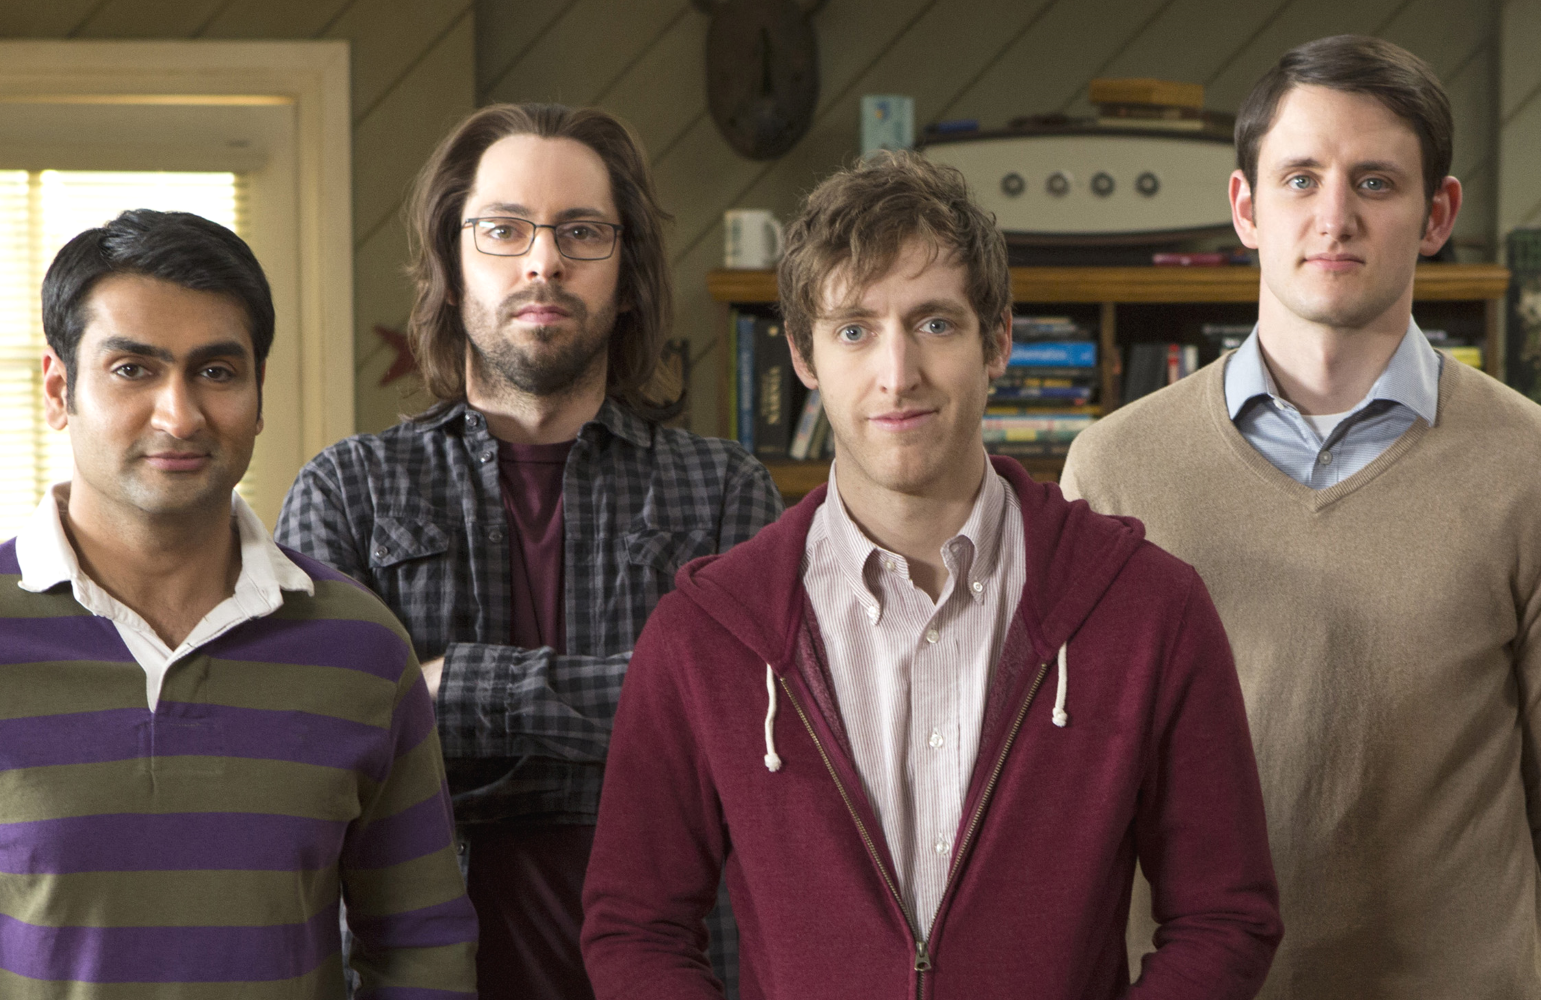 Kumail Nanjiani, Martin Starr, Thomas Middleditch and Zach Woods star in the final season of  HBO's Silicon Valley. (Photo: HBO)